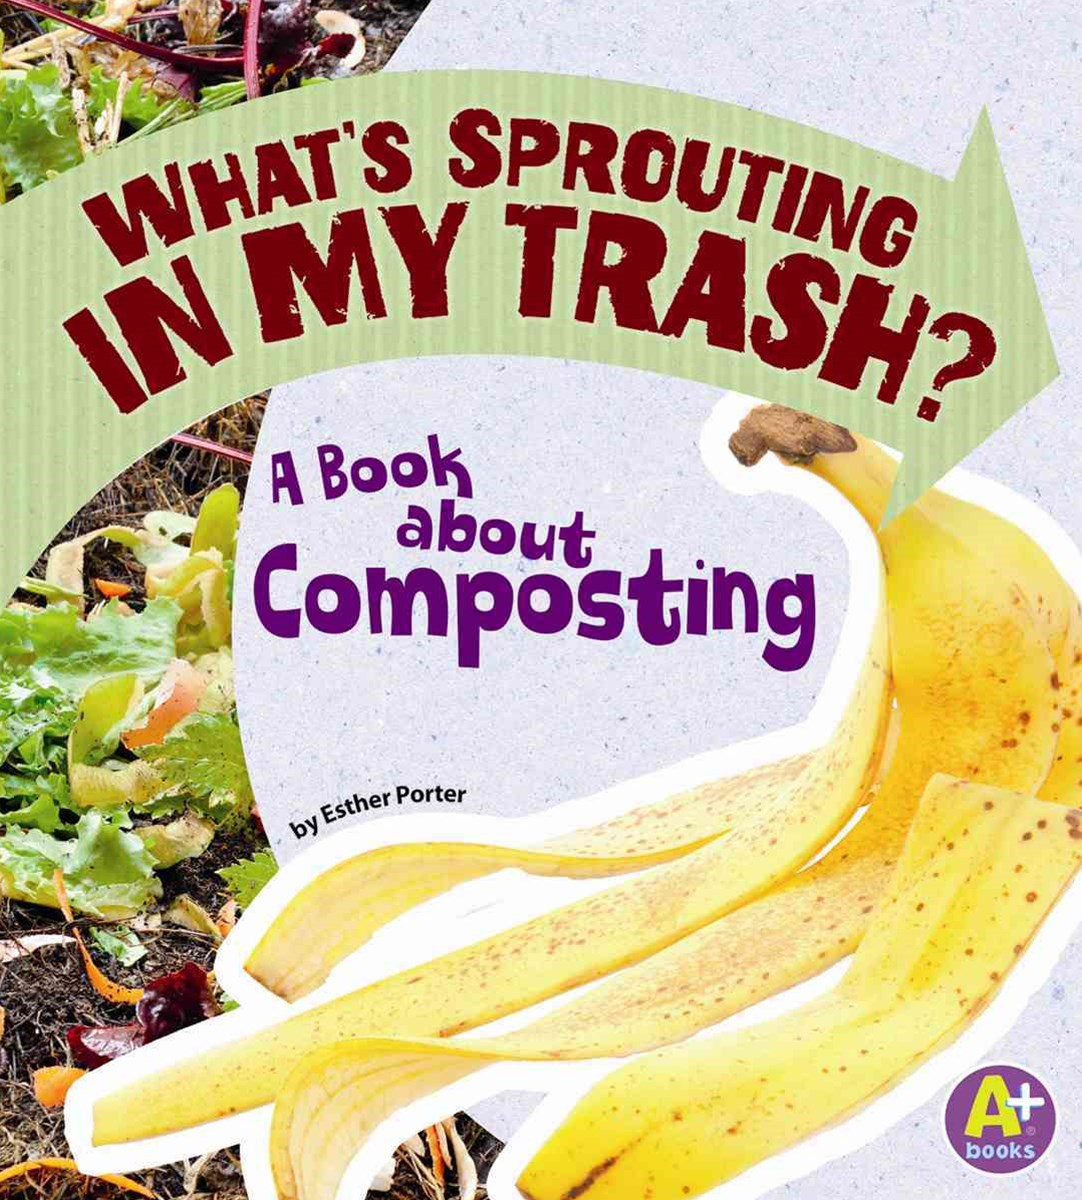 What's Sprouting in My Trash?